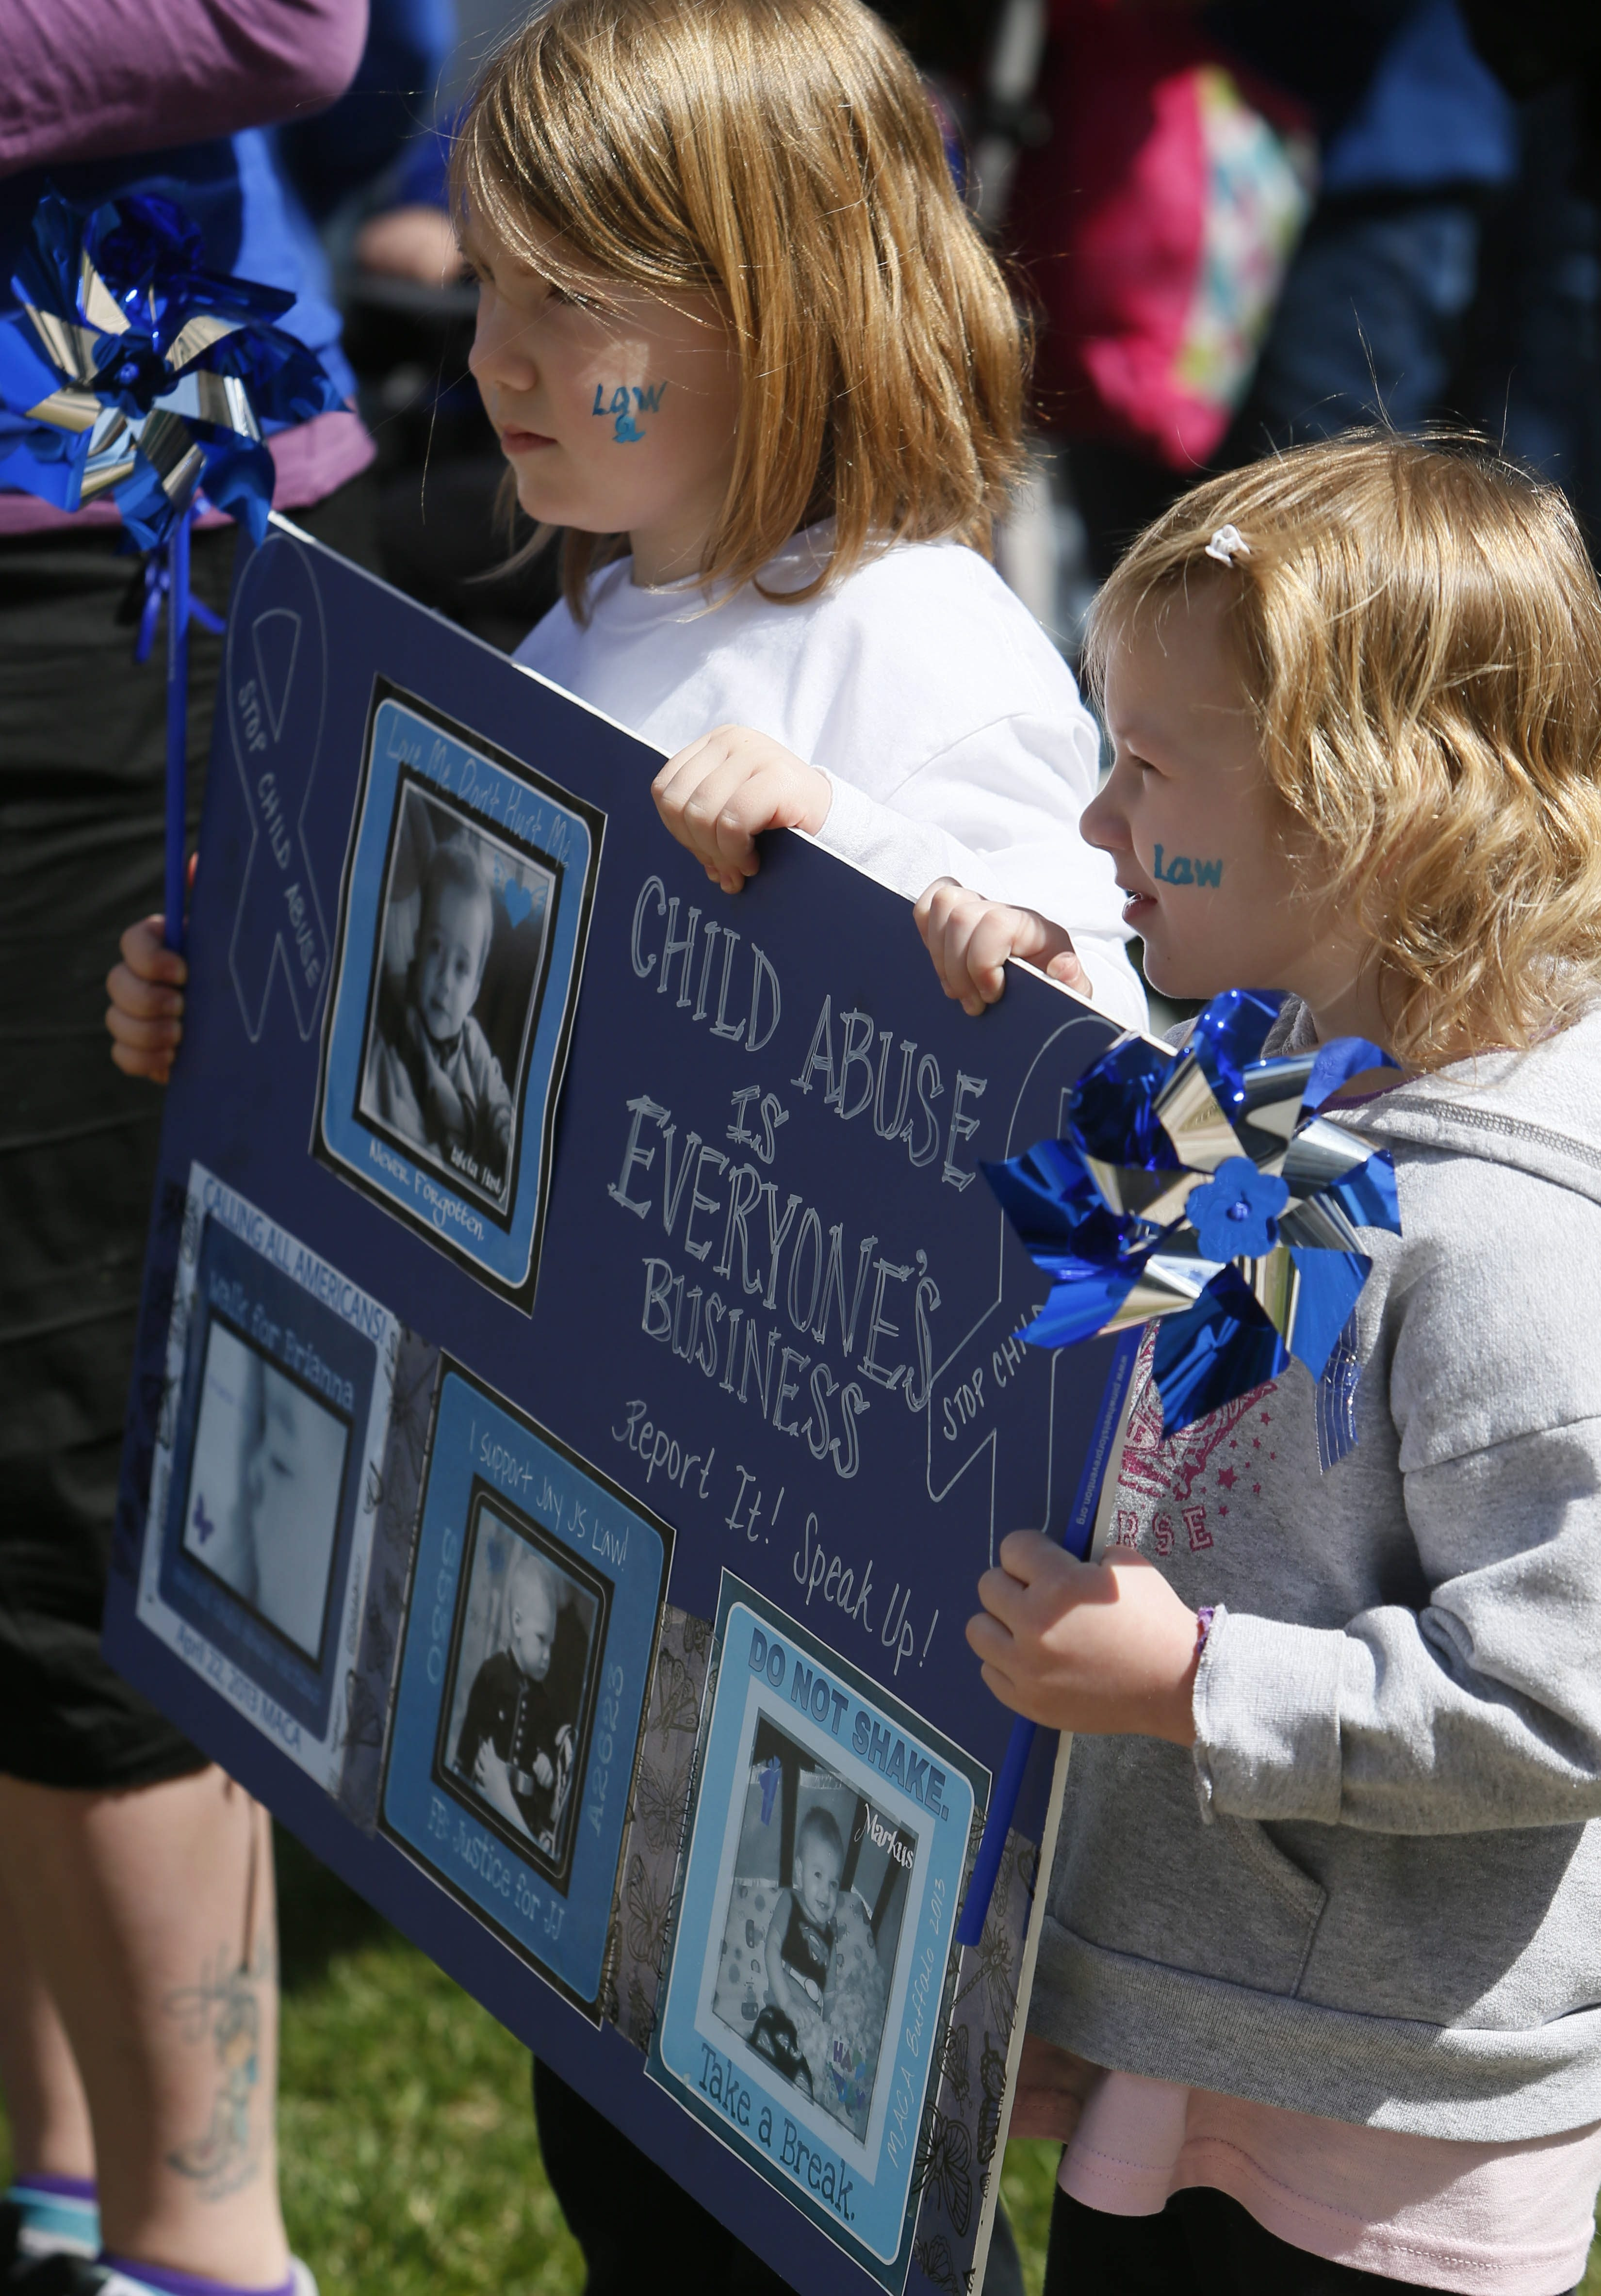 """Cianna and Ava Herrera, ages 5 and 4, send message that issue of child abuse is """"everyone's business"""" as their sign captures spirit  of Monday's march by about 250 advocates."""